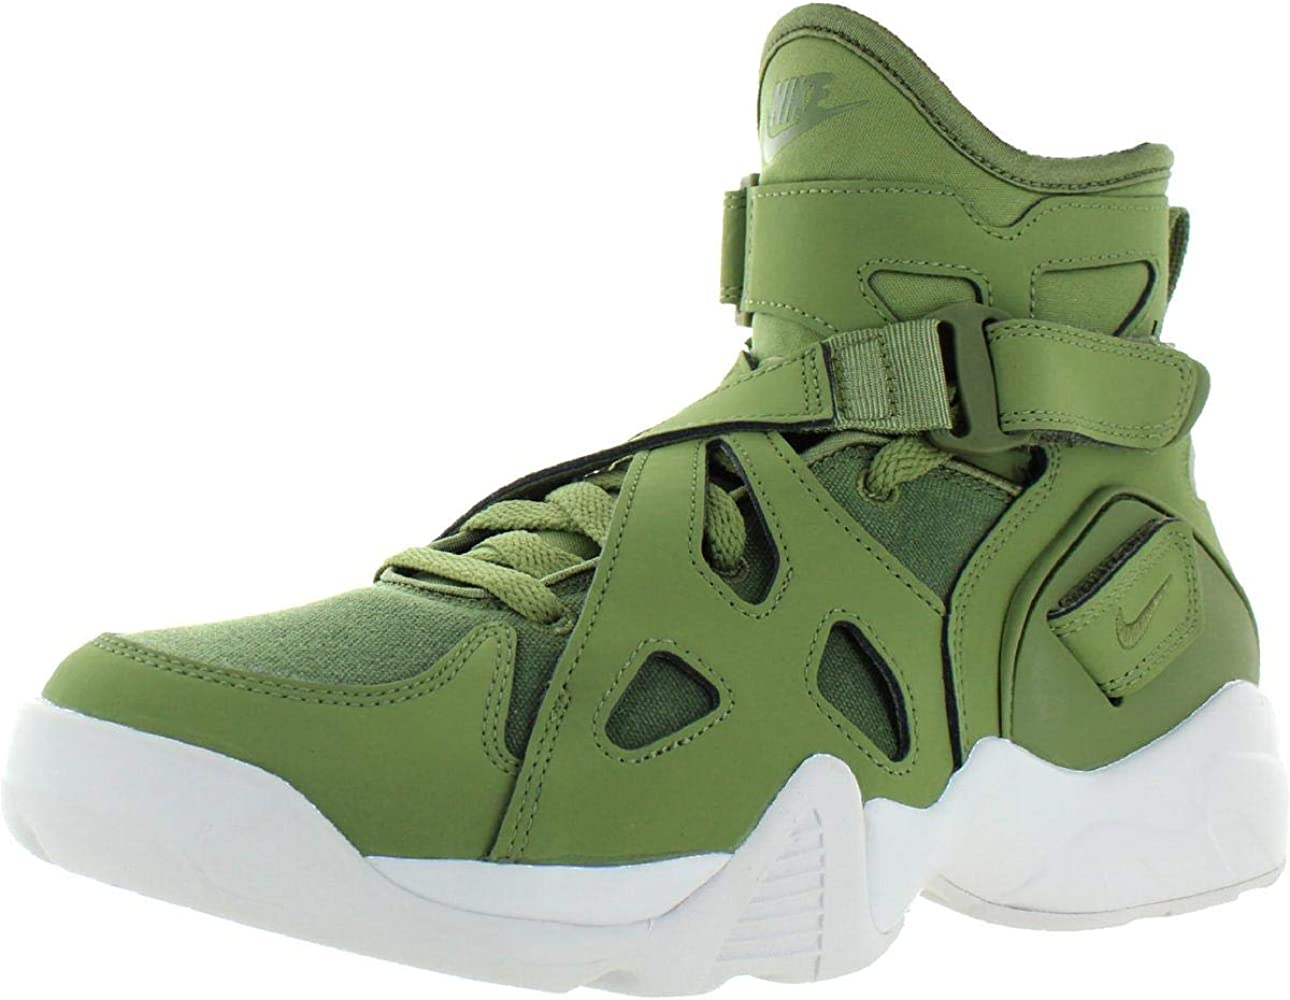 Inminente disfraz Contribuyente  Amazon.com | Nike Men's Air Max Unlimited Basketball Shoes Palm Green (8) |  Shoes